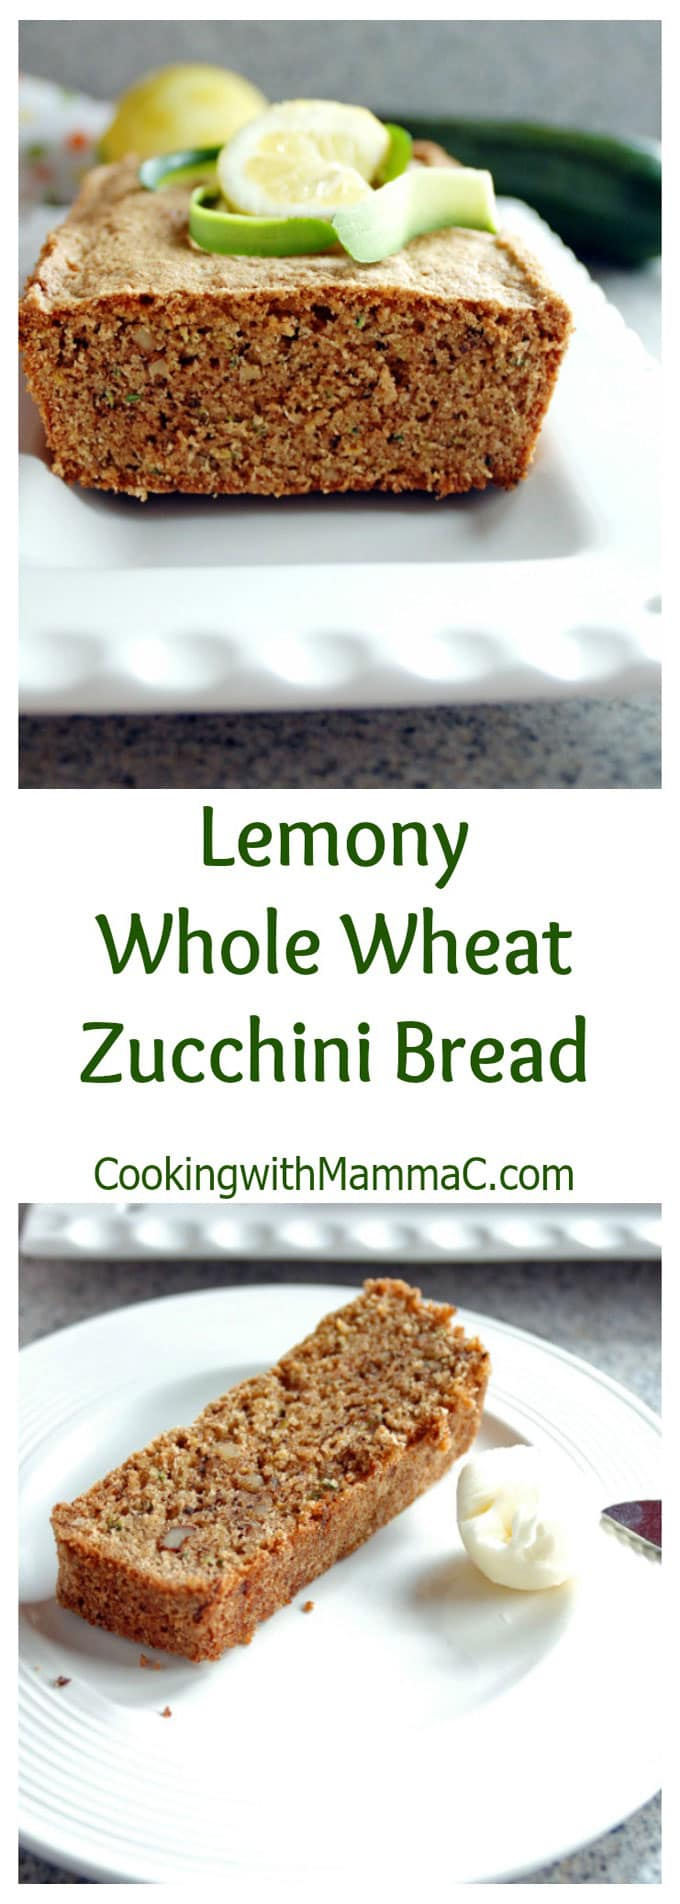 Lemony Whole Wheat Zucchini Bread -- A delicious recipe made with 100% whole wheat flour! It's a great way to get more whole grains in your diet, but you can substitute all-purpose flour, if you prefer!